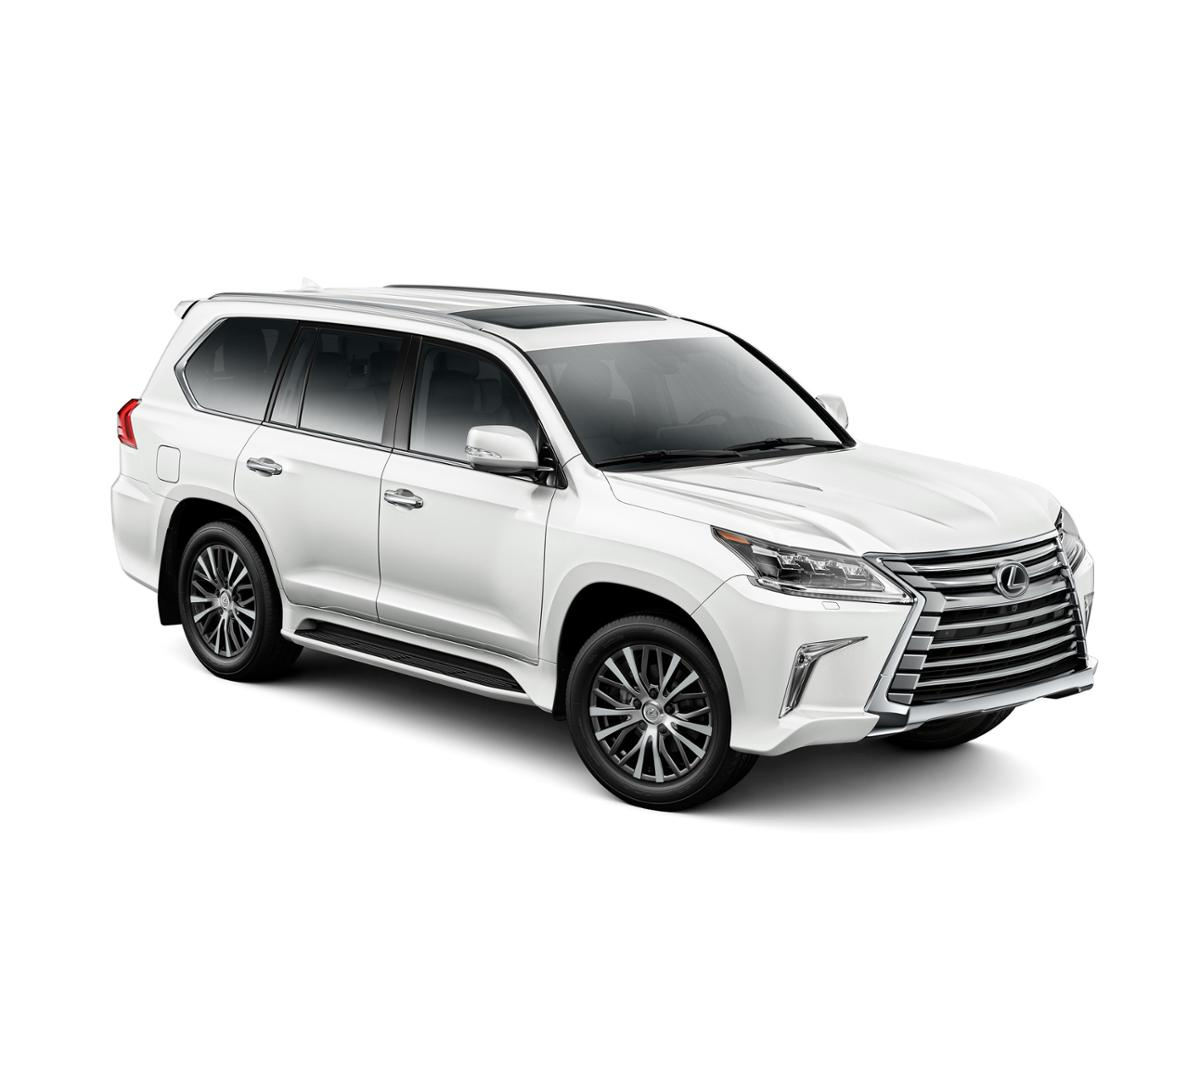 2019 Lexus LX 570 Vehicle Photo in Lakeway, TX 78734